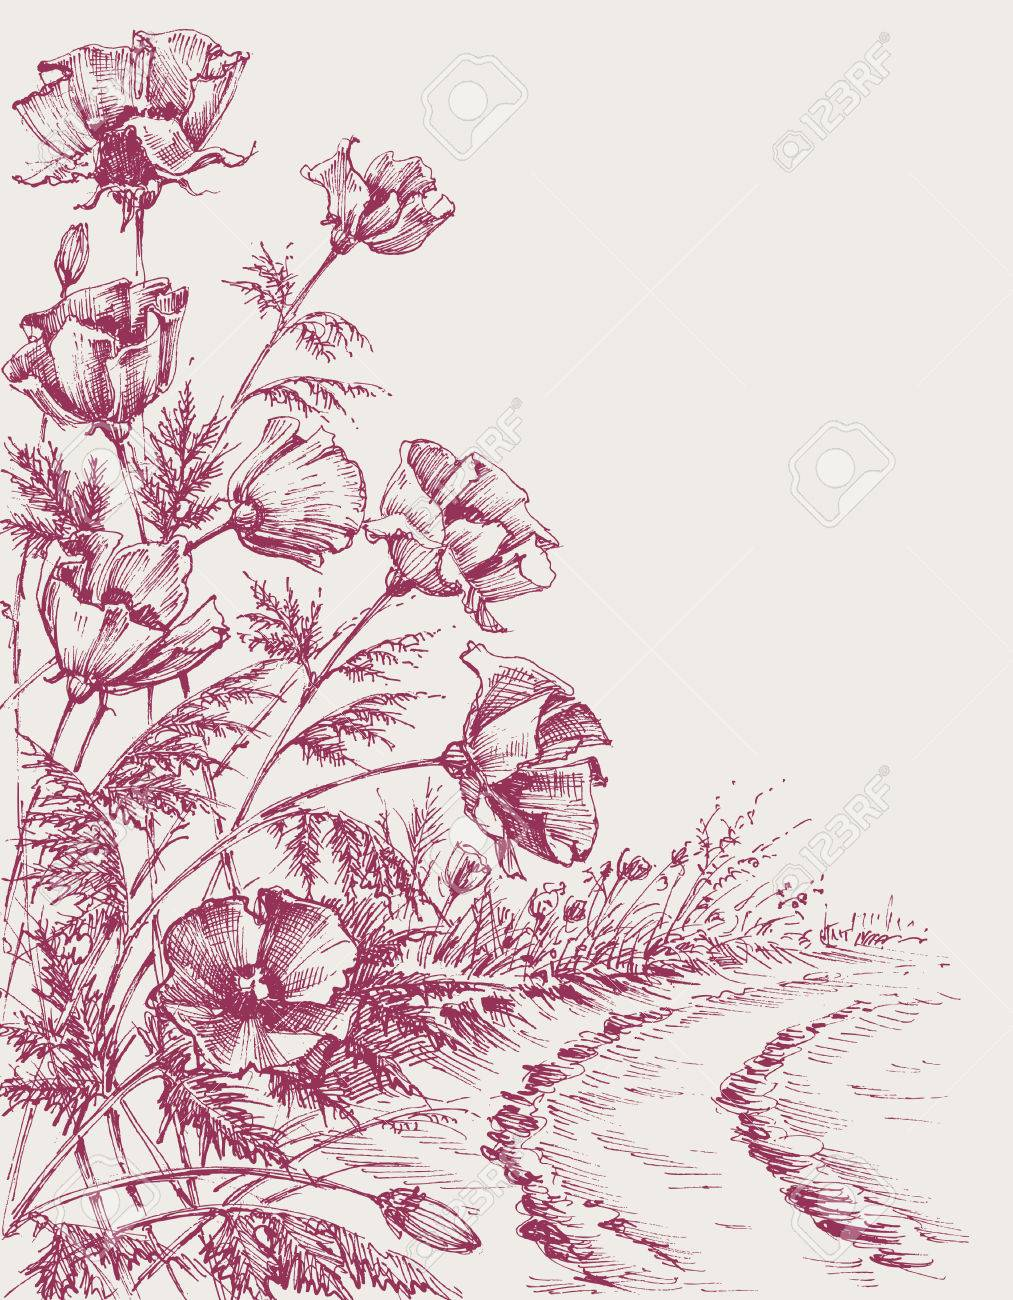 Poppy flowers on the road hand drawing. Summer background design